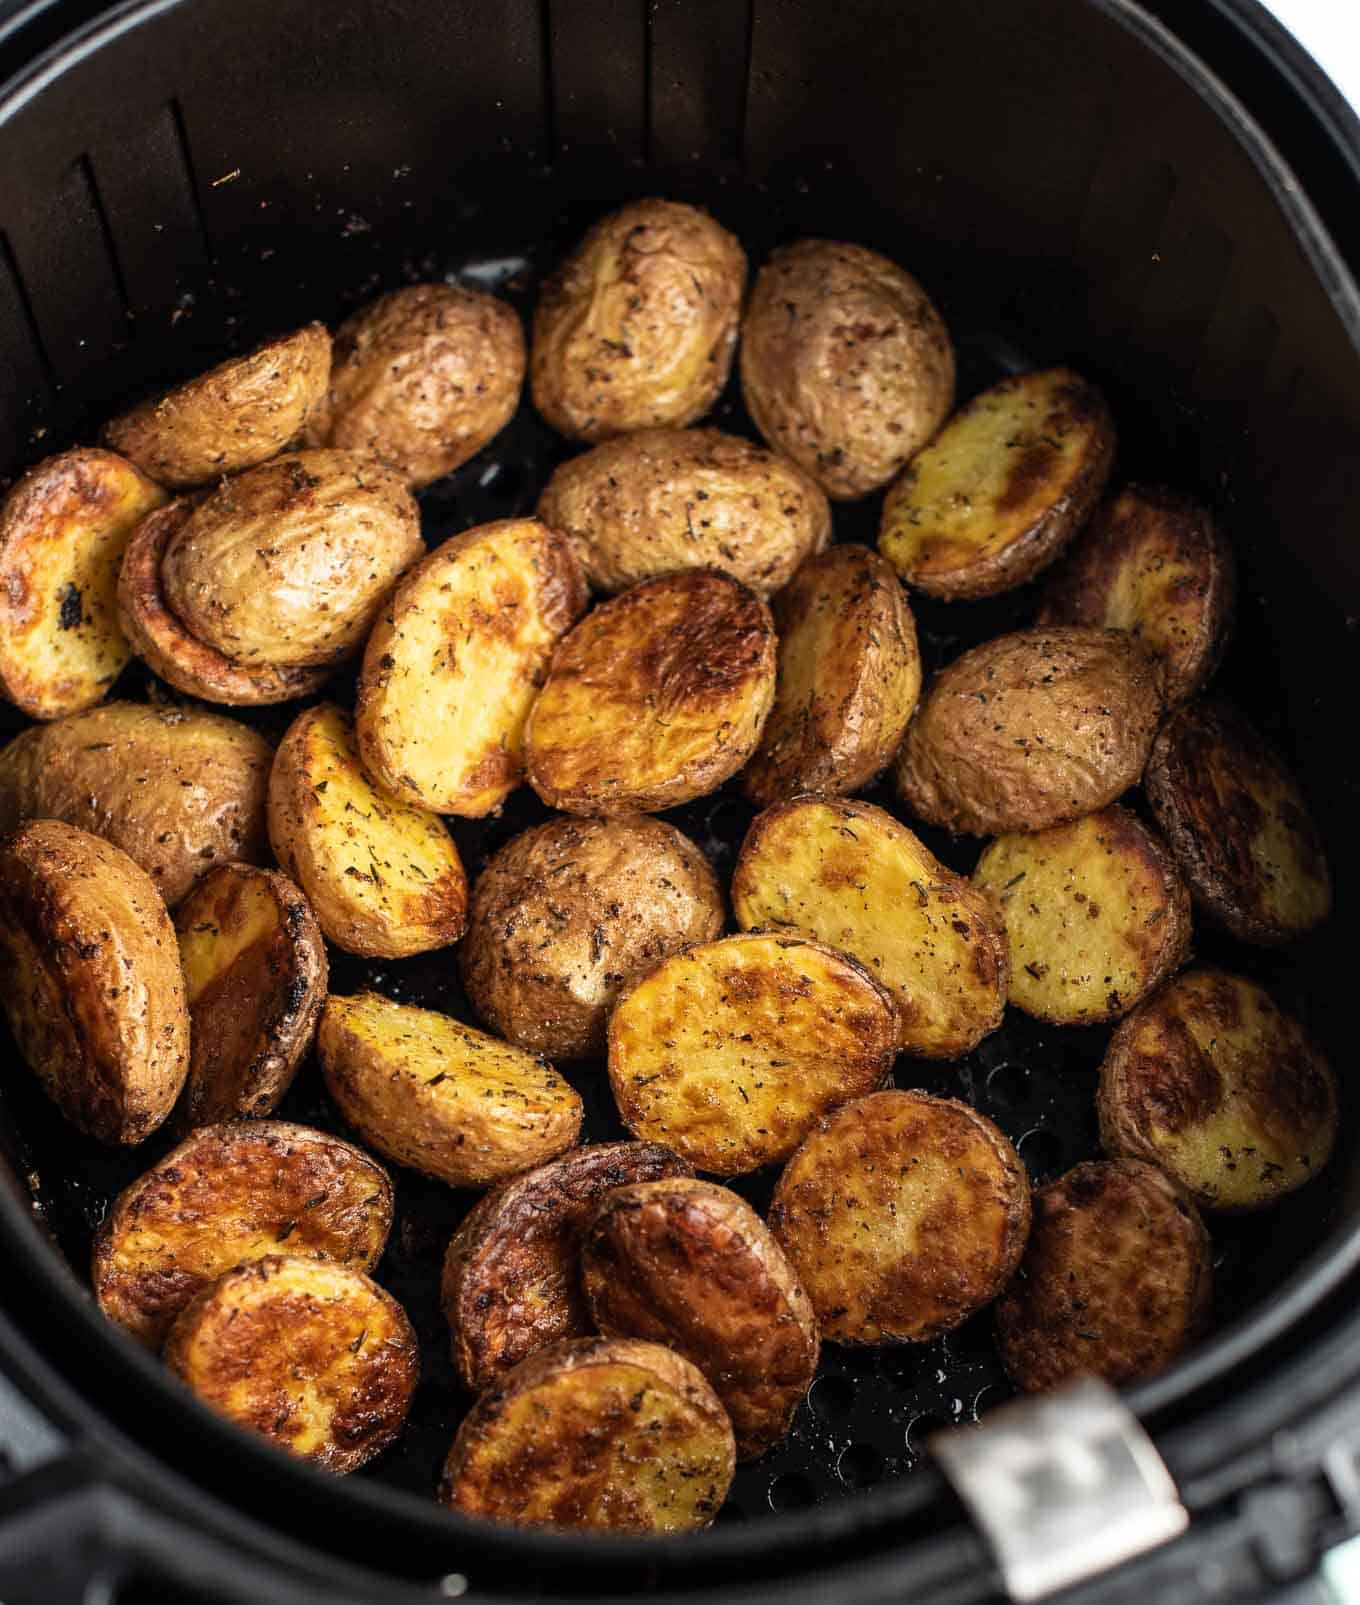 roasted potatoes in the air fryer from an overhead view